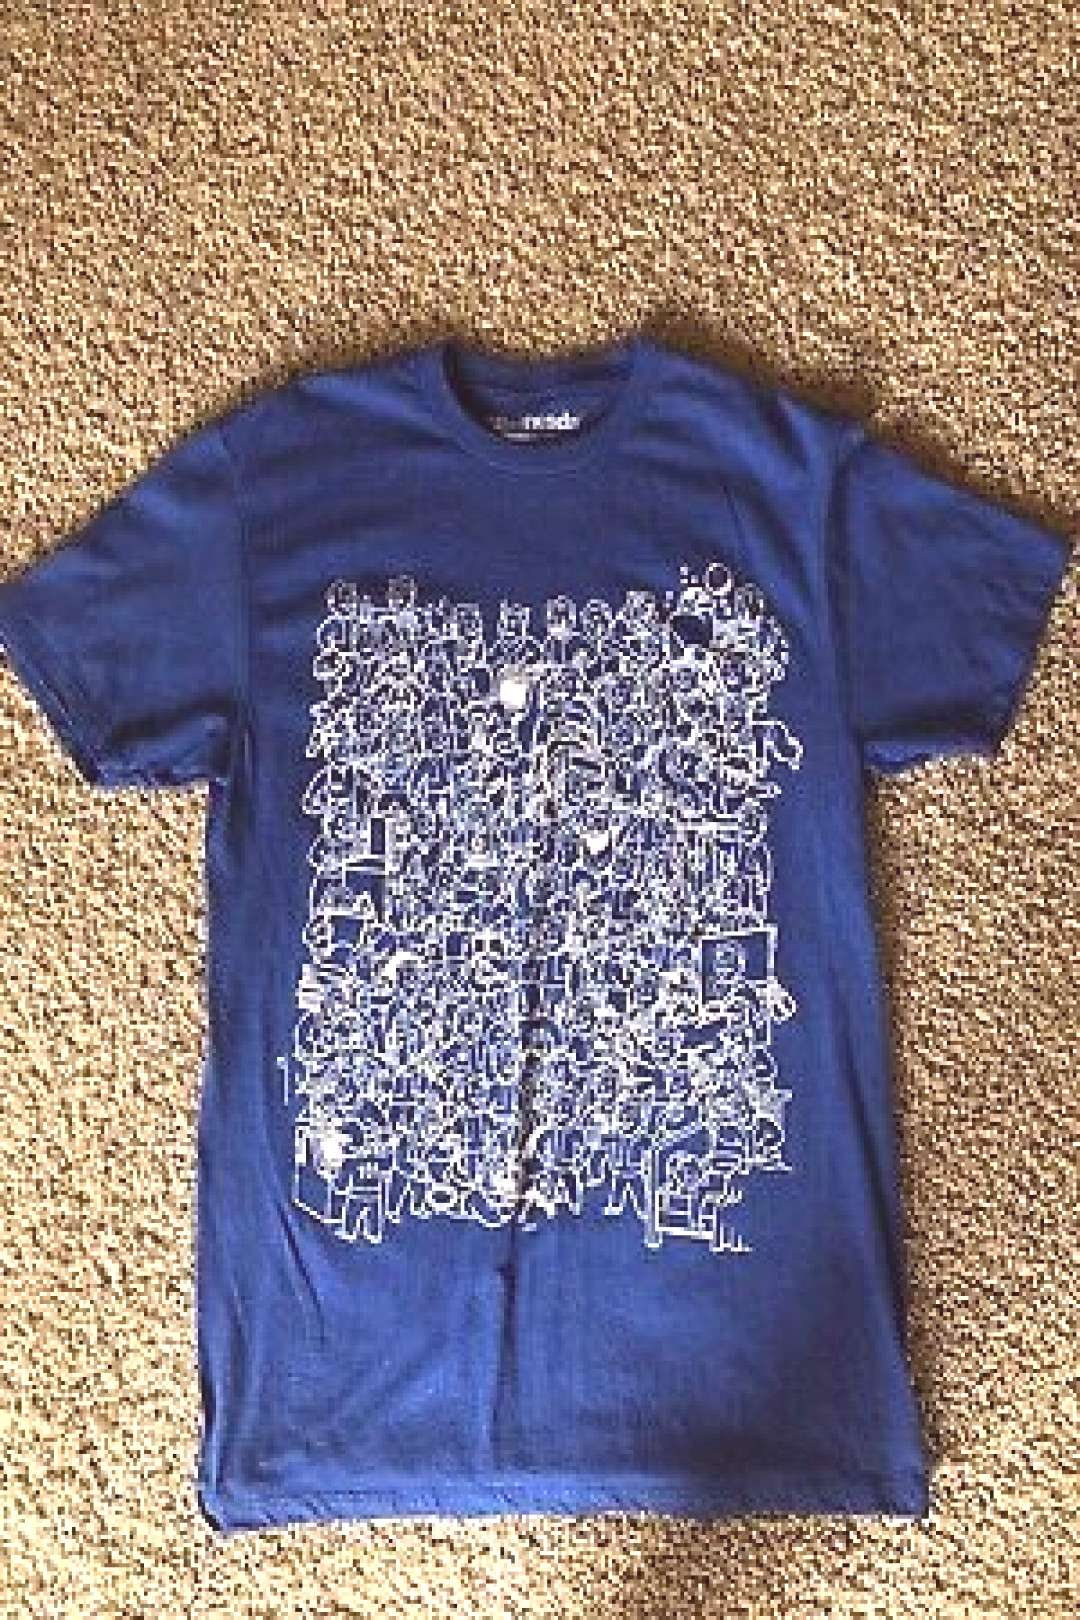 Fallout 4 Vault Boy Collage Blue Size Medium T-shirt Loot Crate Exclusive (ebay link)